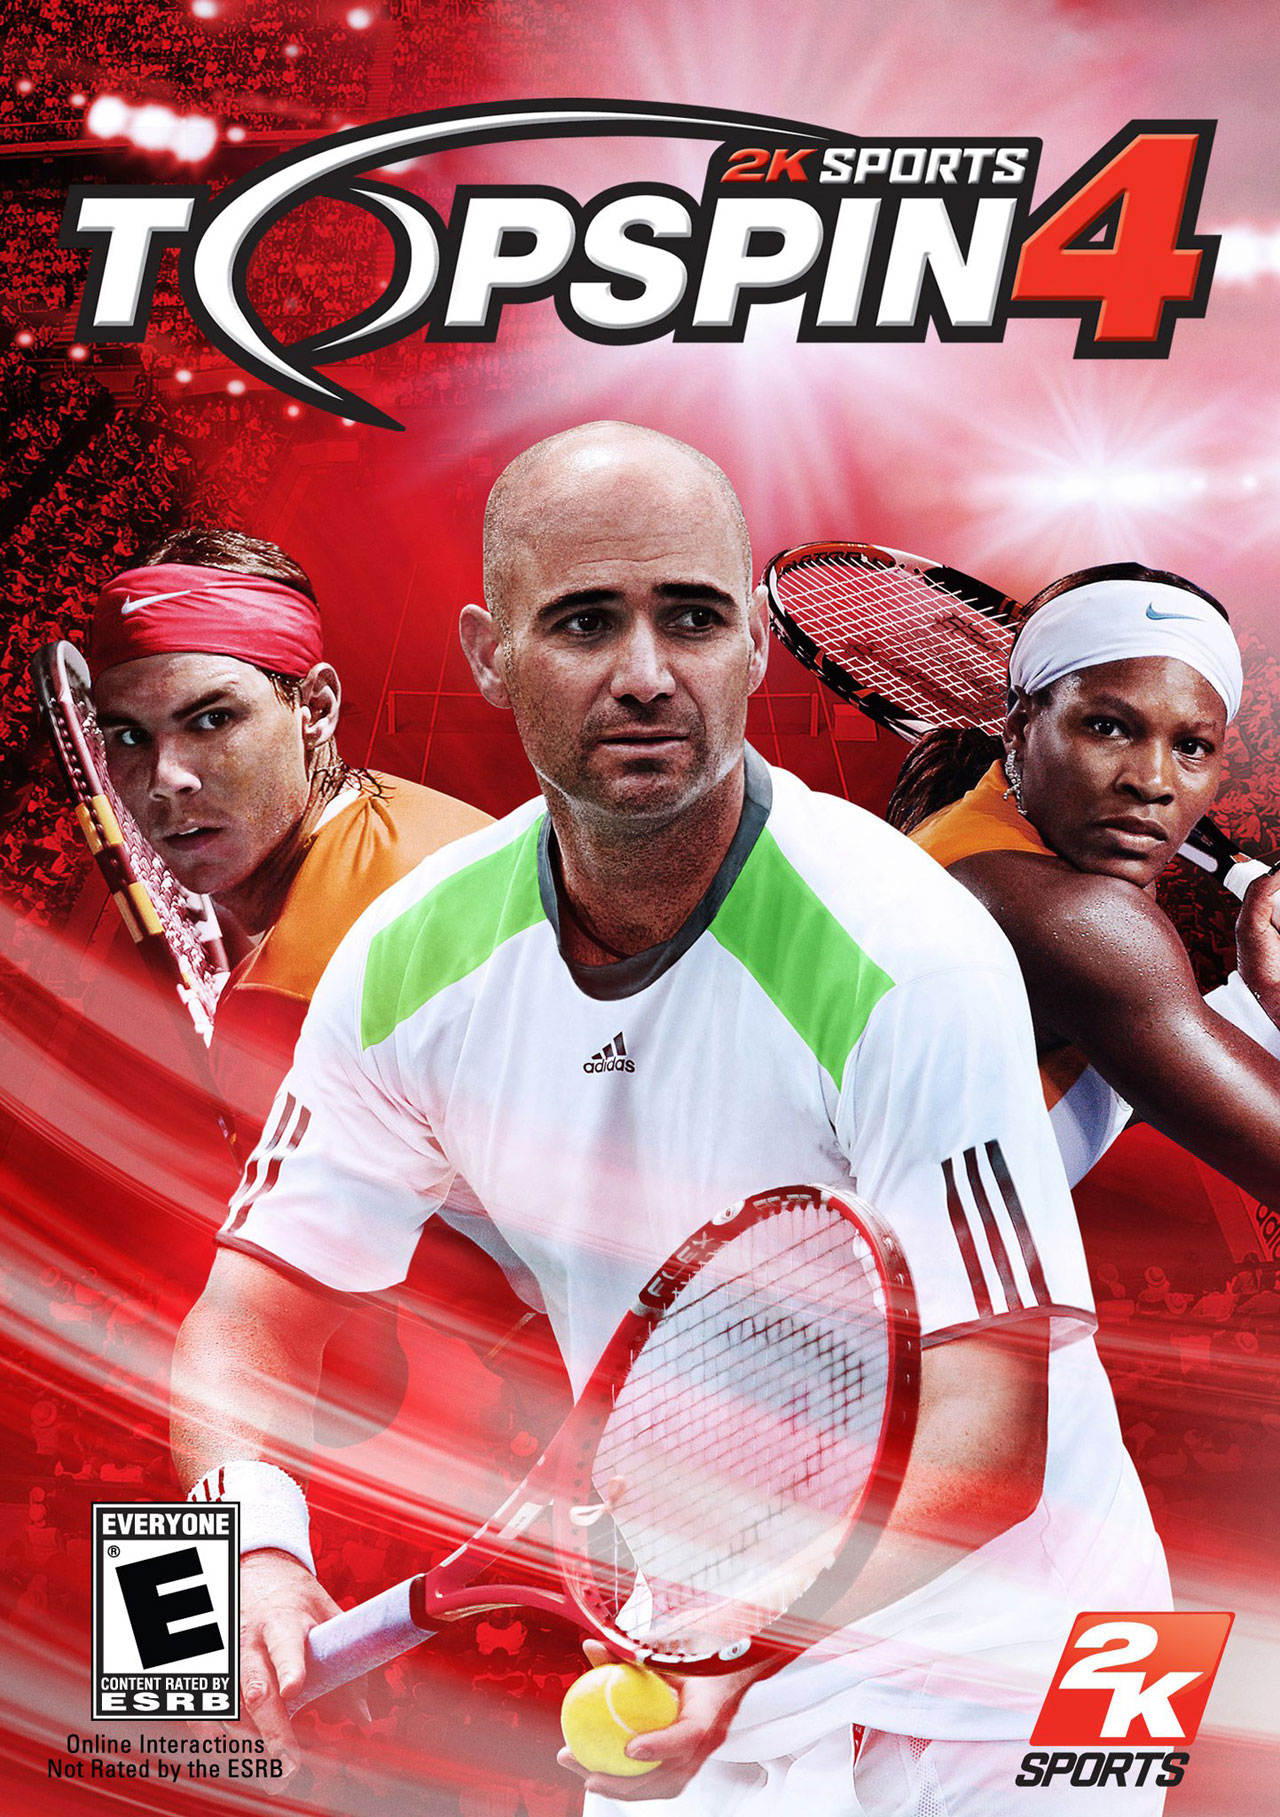 top spin 4 game free download